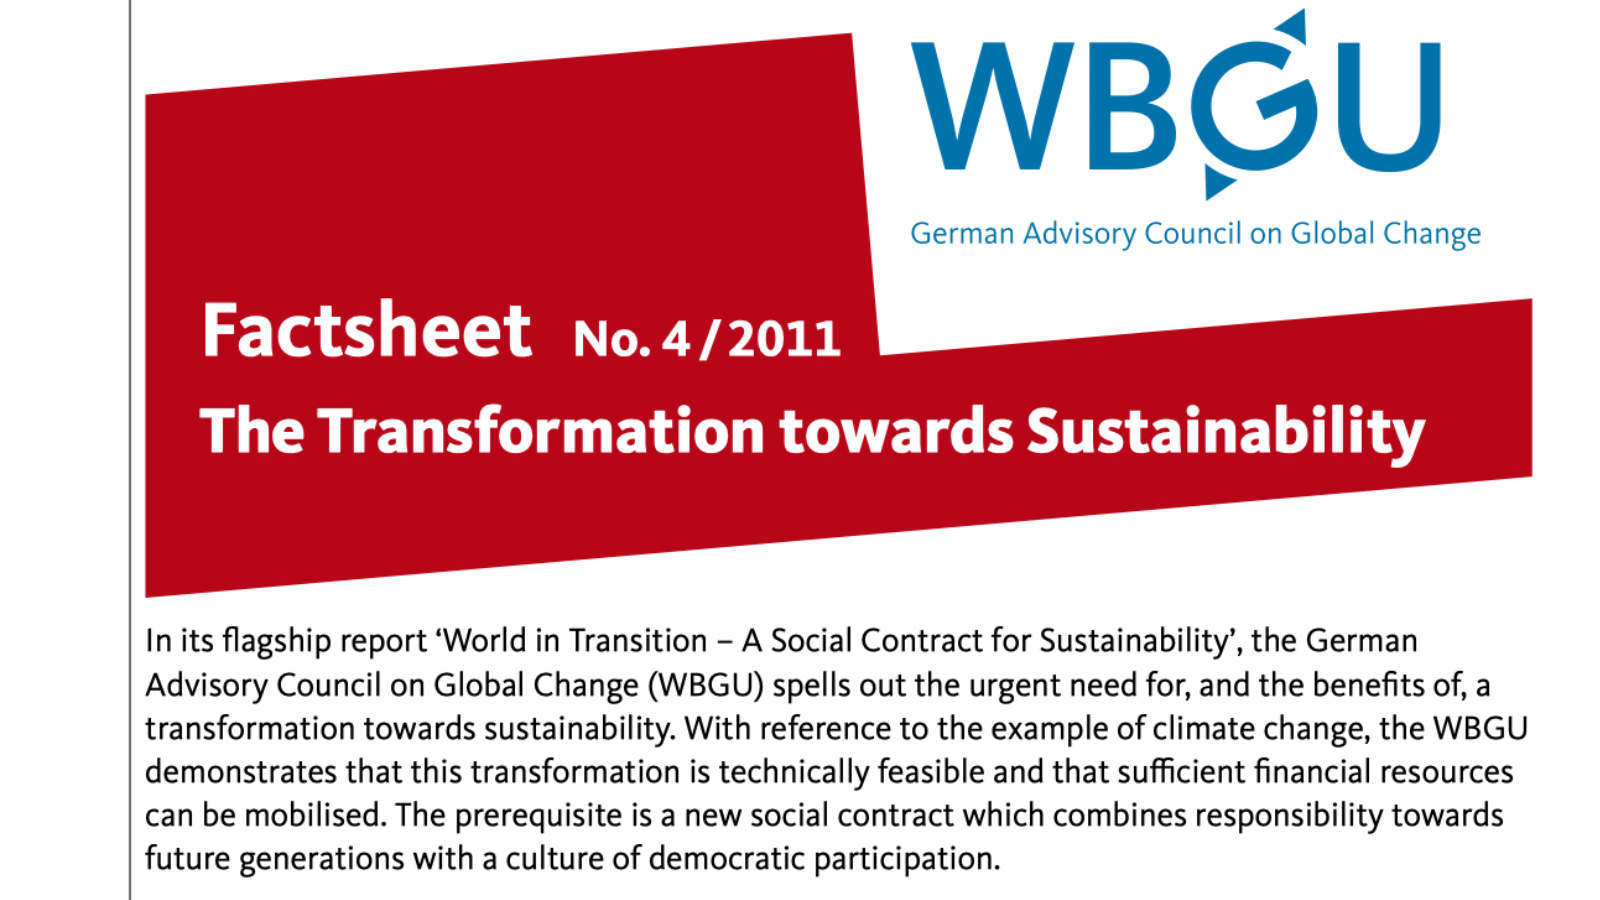 Factsheet: The Transformation towards Sustainability